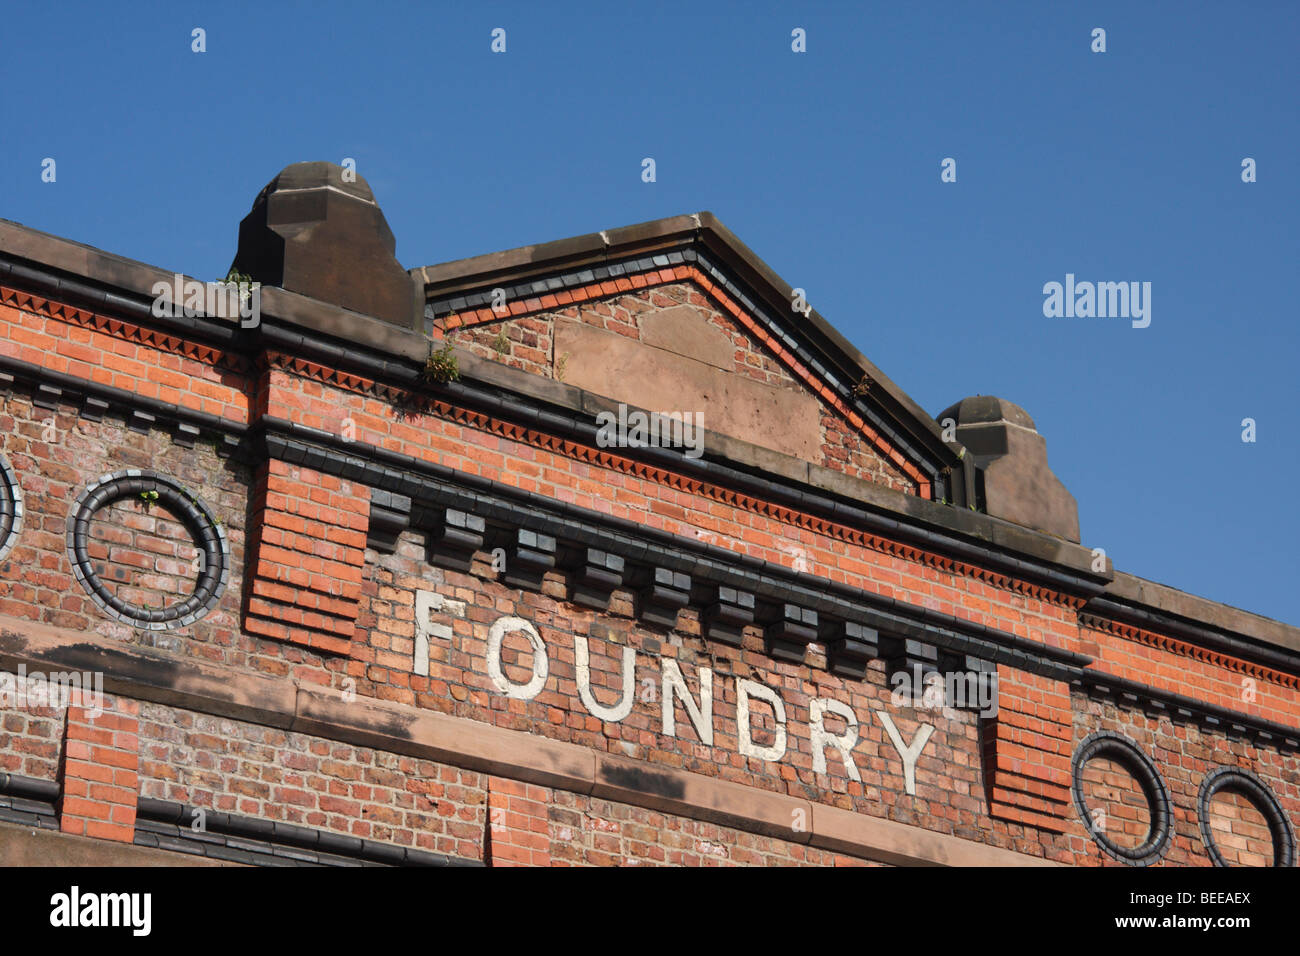 The former foundry building of Harland & Wolff Ltd, shipbuilders, Bootle, 4 miles north of Liverpool, England - Stock Image